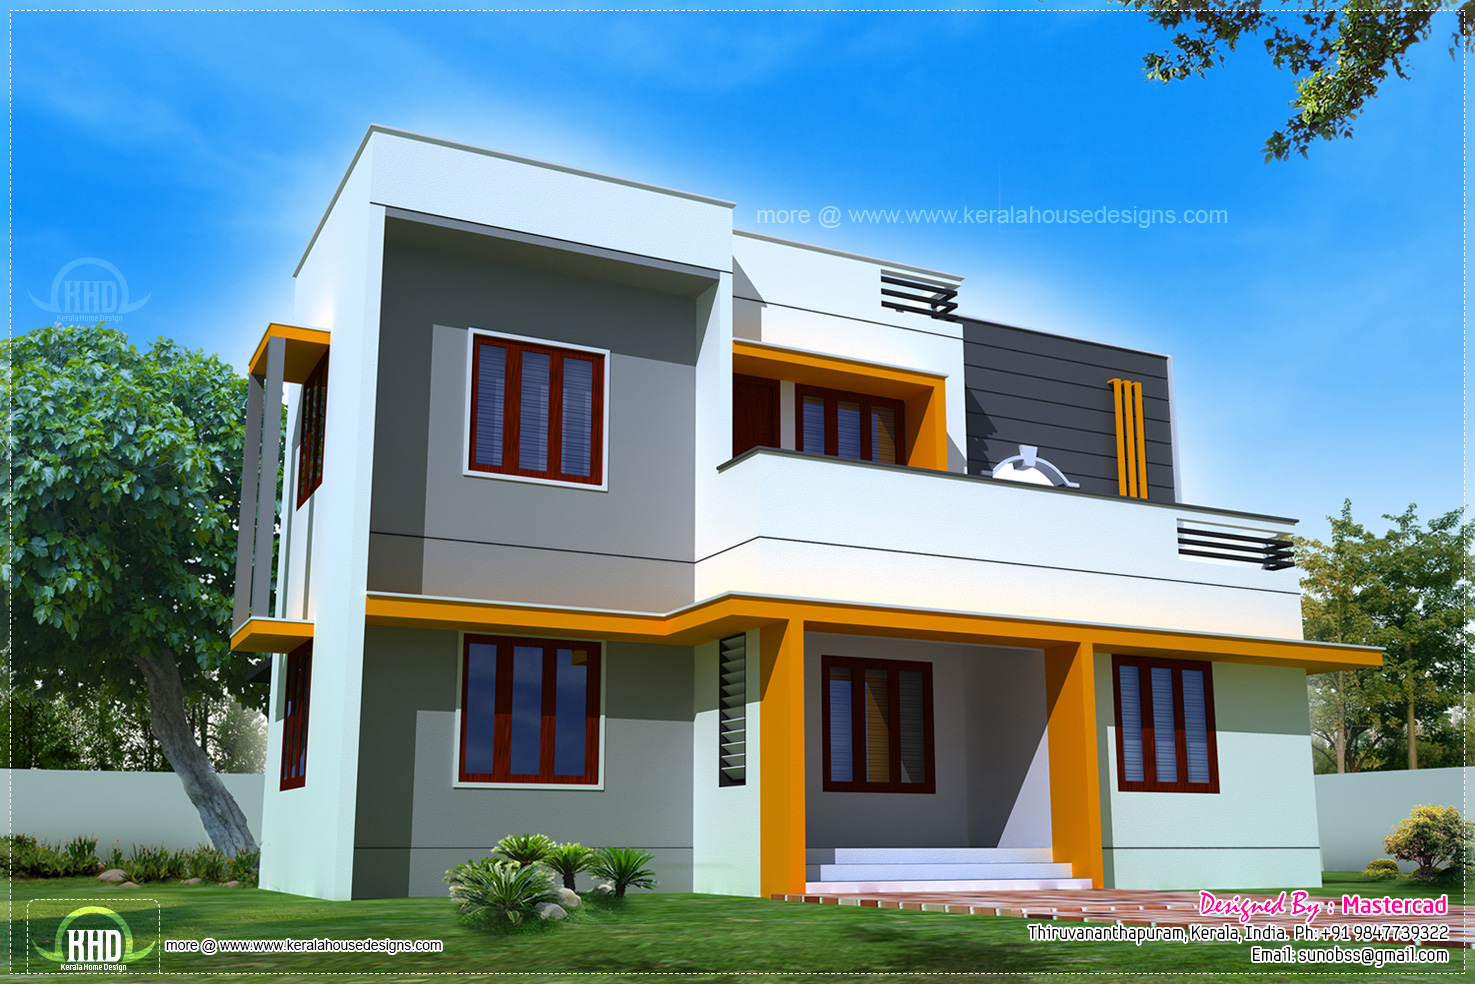 1400 modern contemporary home exterior kerala for South indian small house designs